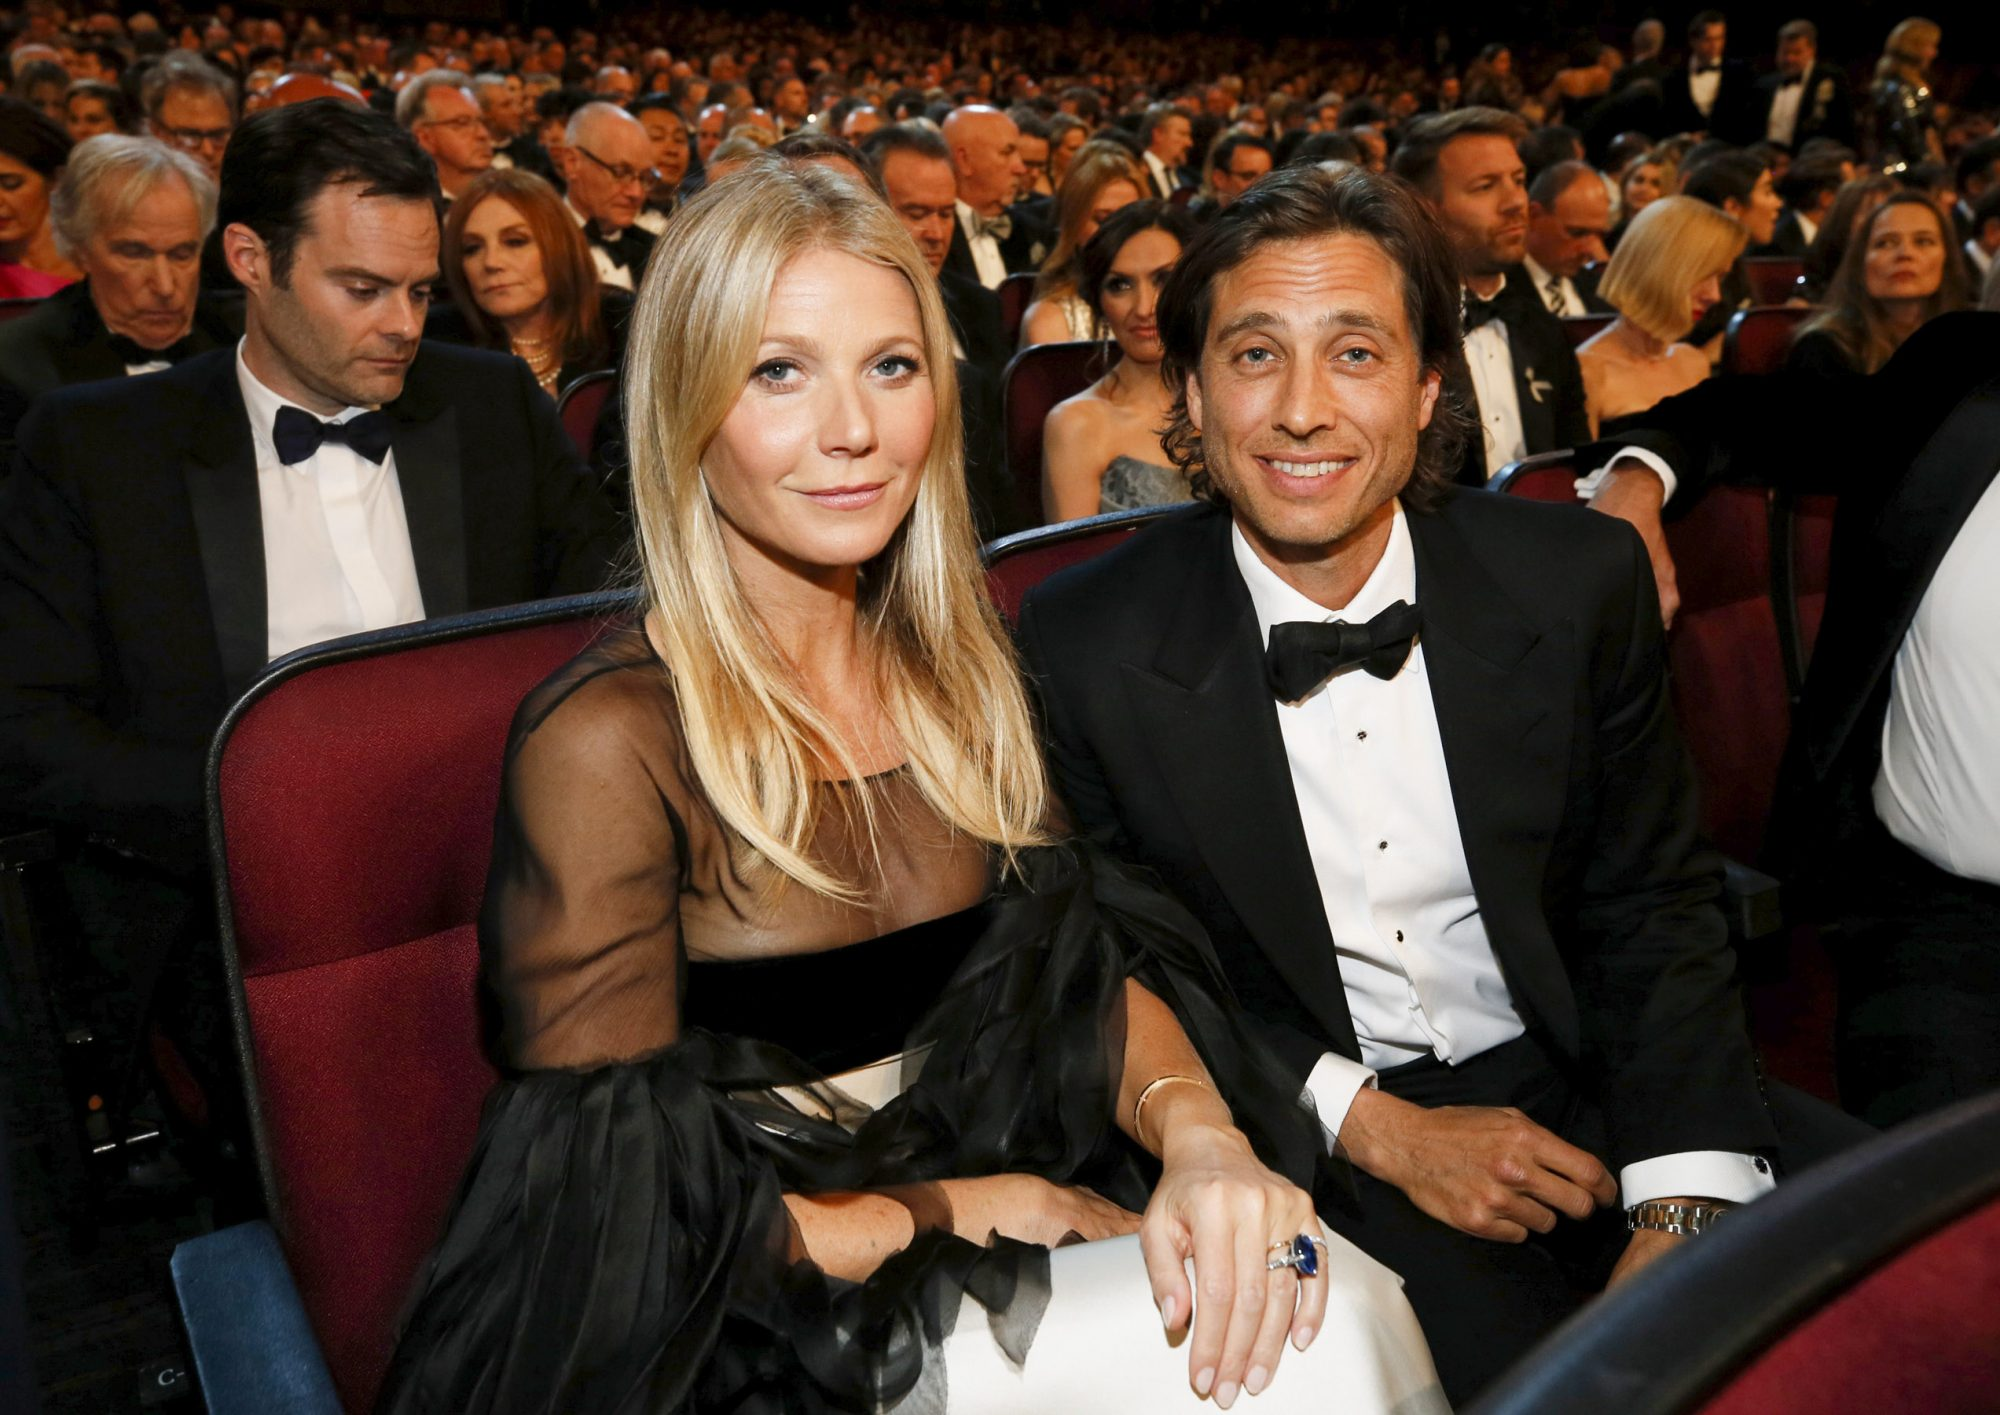 Gwyneth Paltrow, Brad Falchuk. Gwyneth Paltrow, left, and Brad Falchuk in the audience at the 71st Primetime Emmy Awards, at the Microsoft Theater in Los Angeles 71st Primetime Emmy Awards - Audience, Los Angeles, USA - 22 Sep 2019